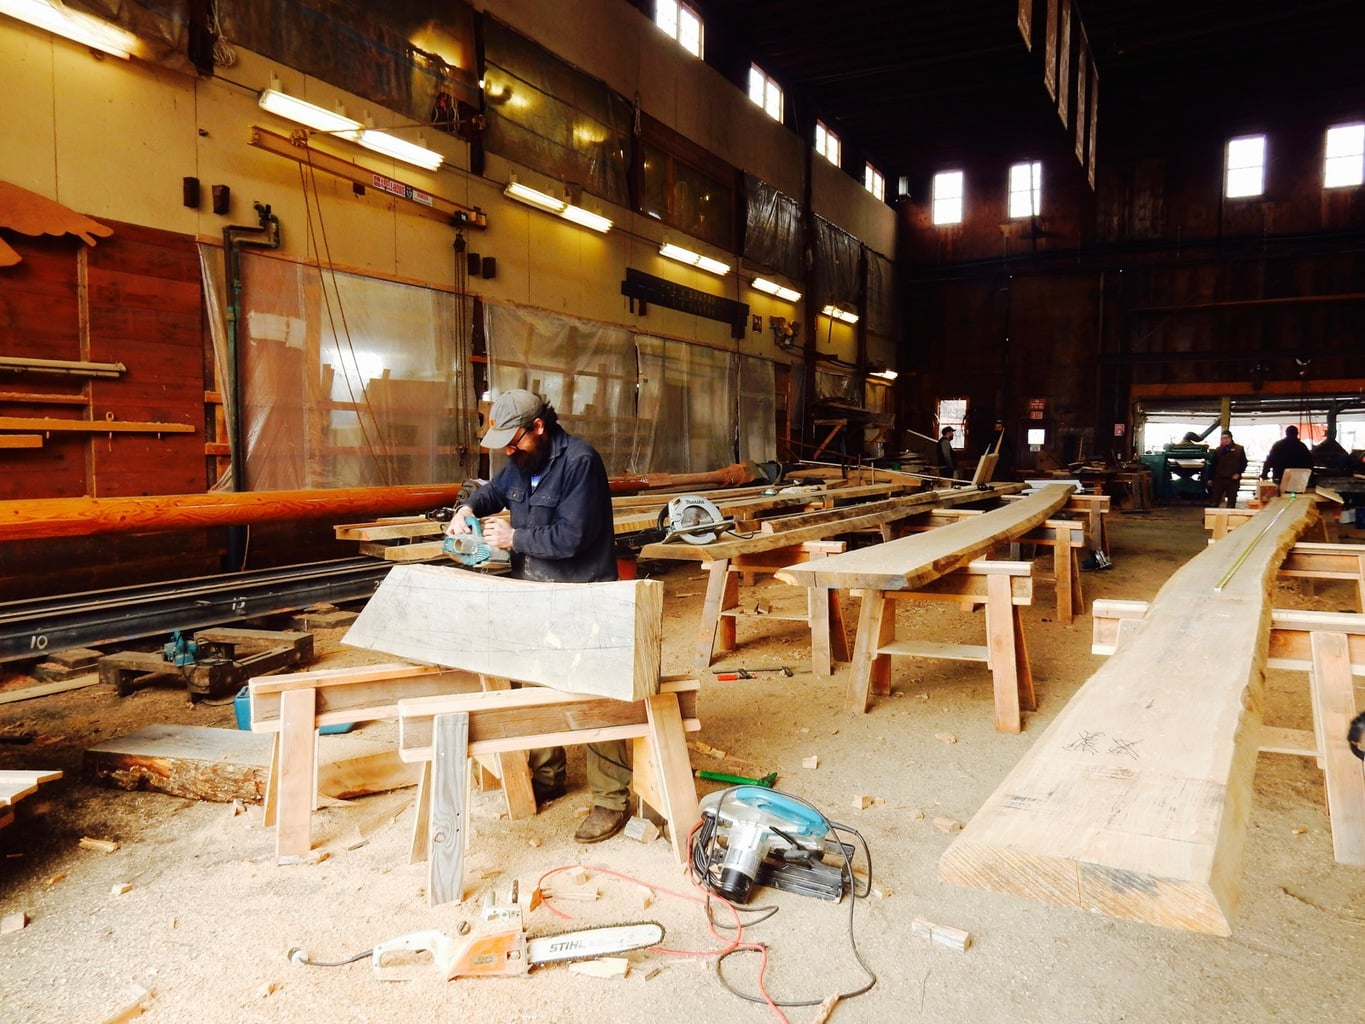 Working the wood for the Mayflower II restoration, Mystic Seaport CT